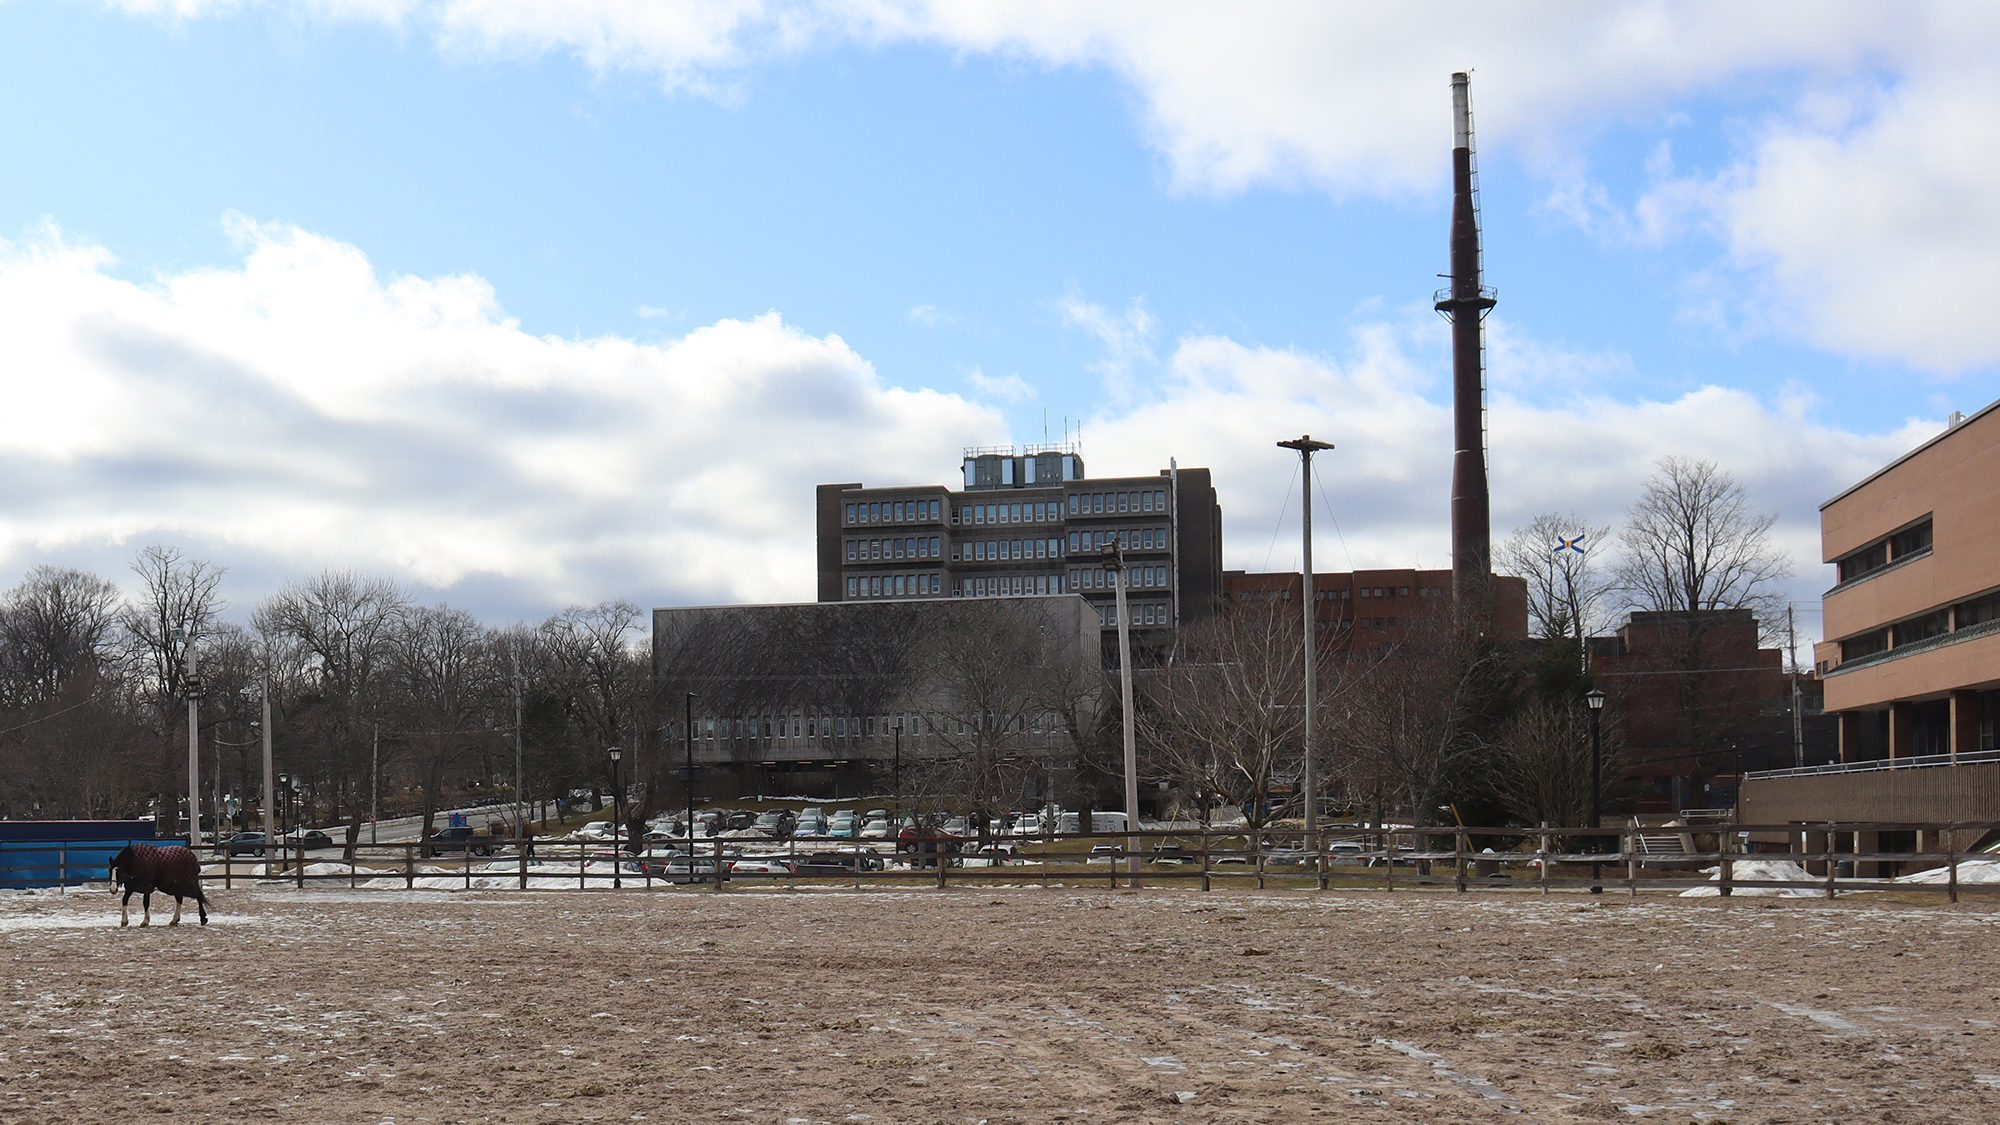 The parkade is currently set for construction beside the Museum of Natural History on Bell Road.